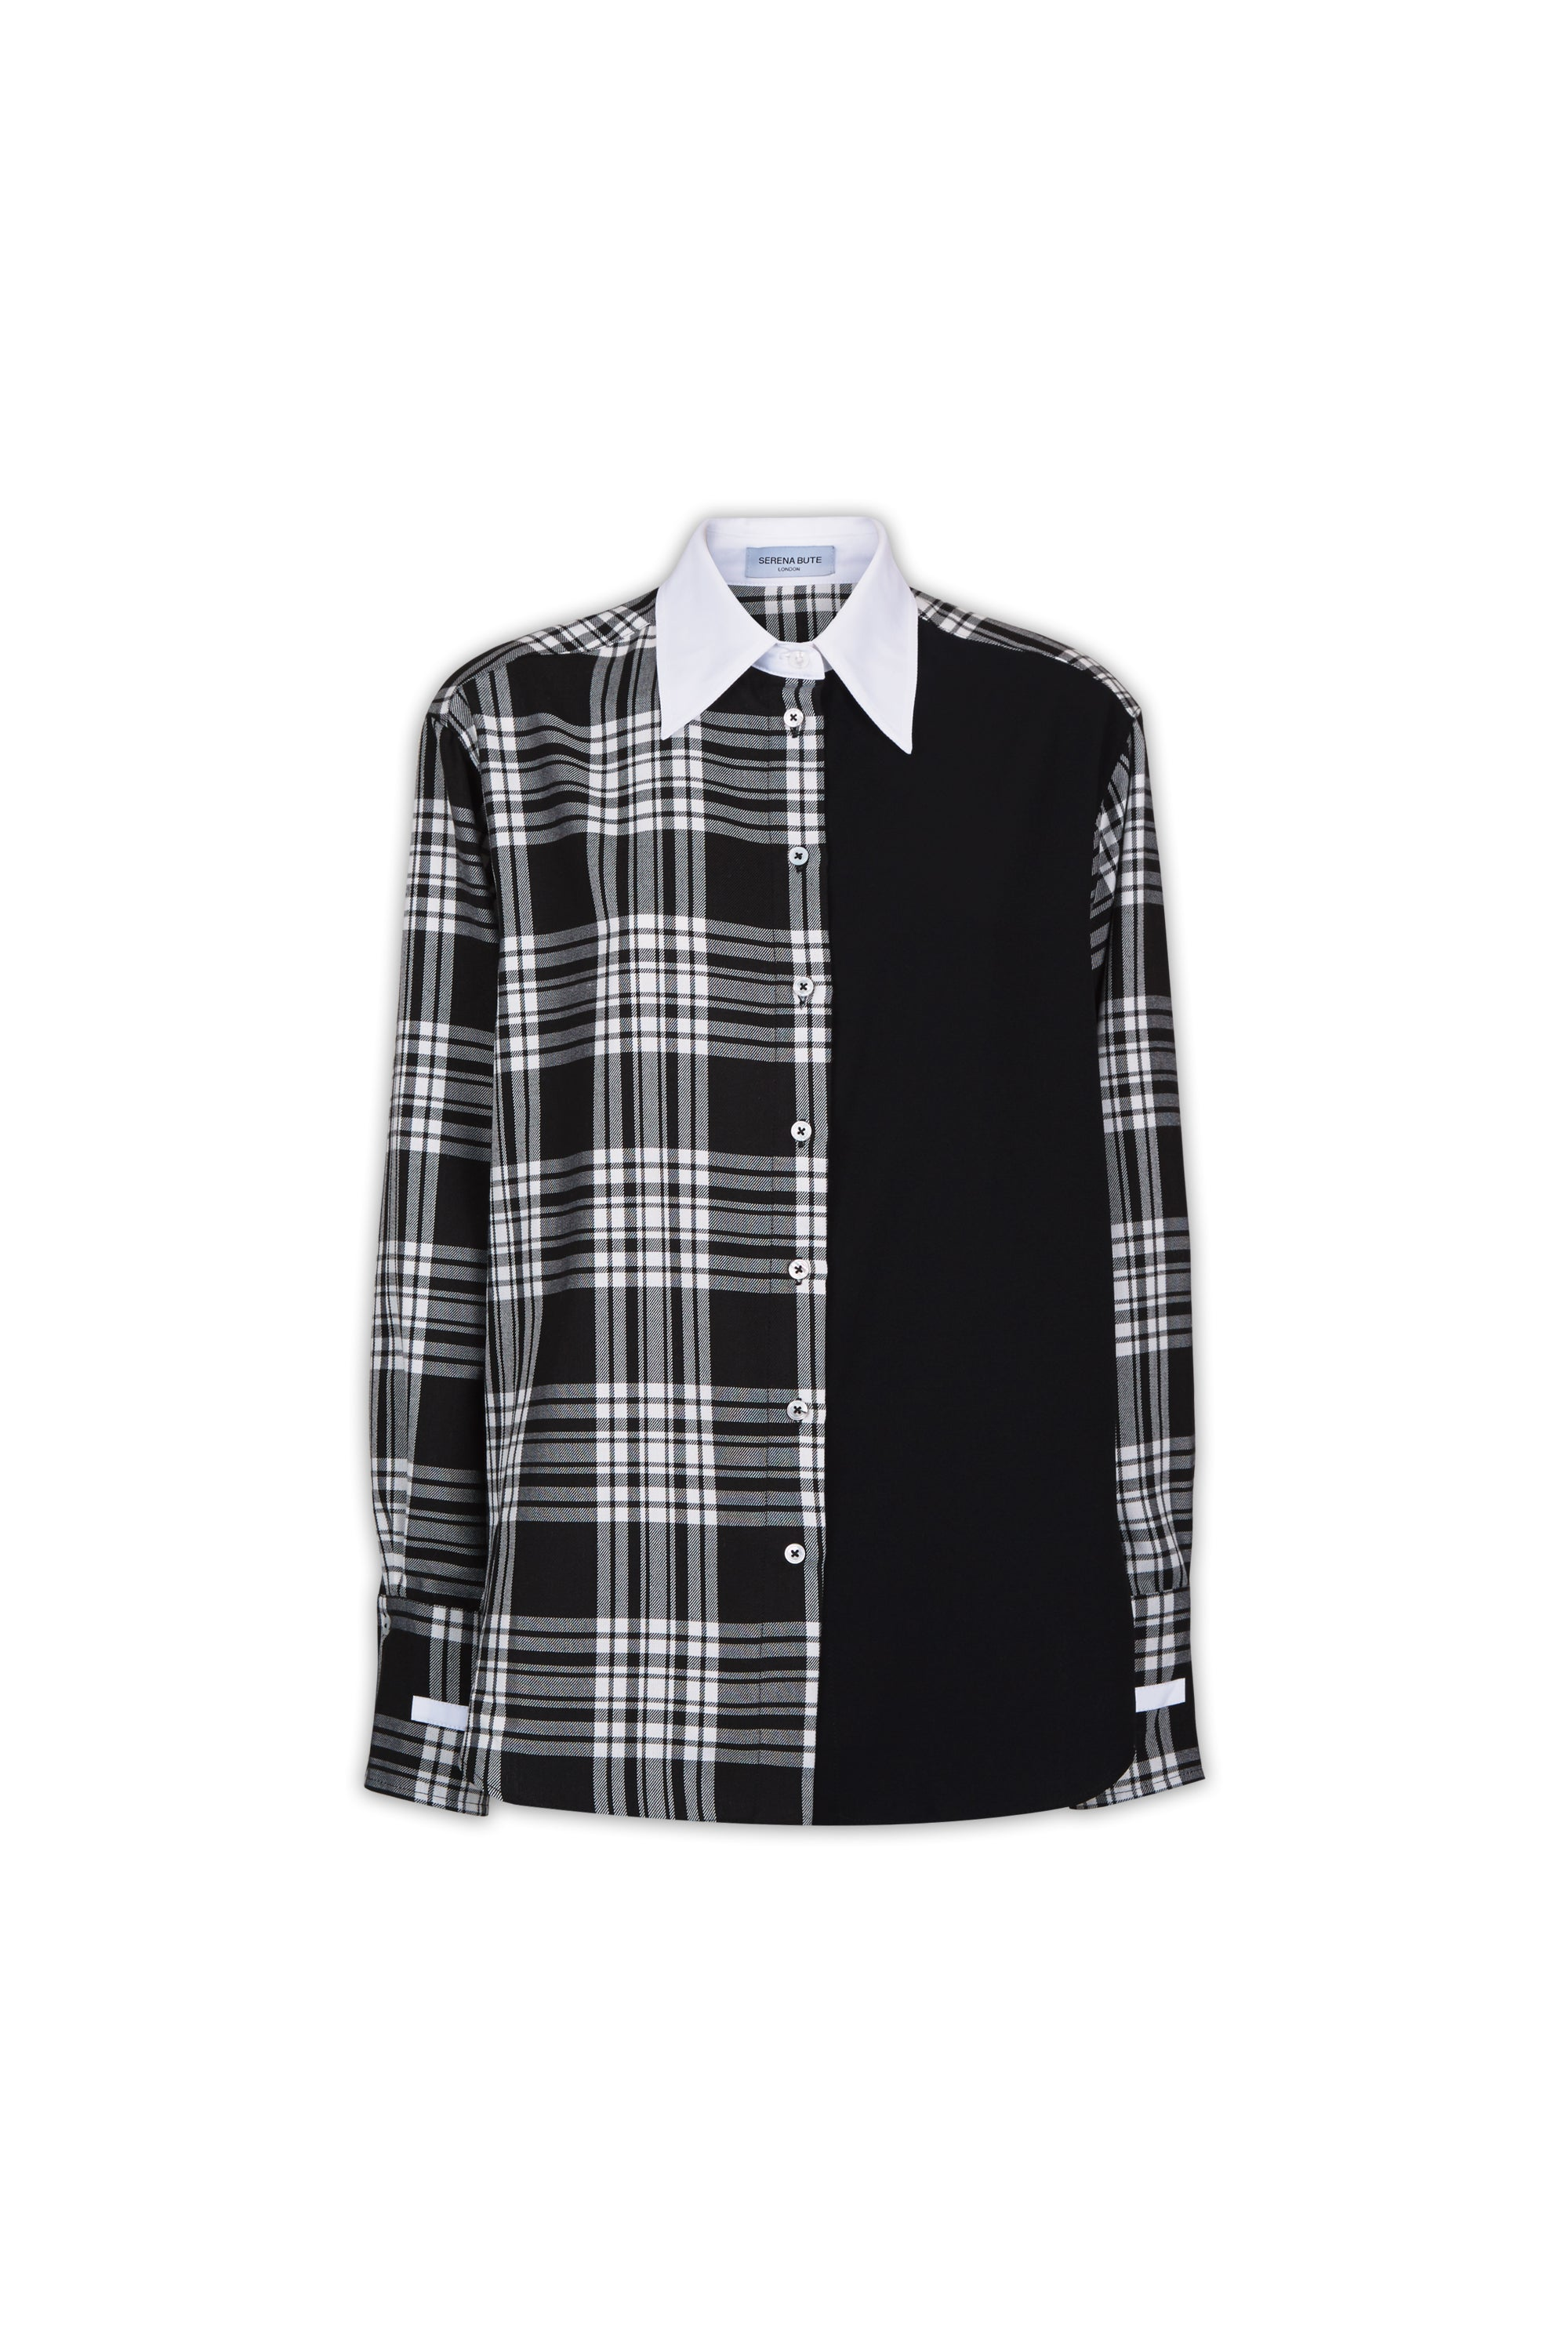 The Oversized Shirt - Black & White Plaid Cotton Two Tone - SERENA BUTE